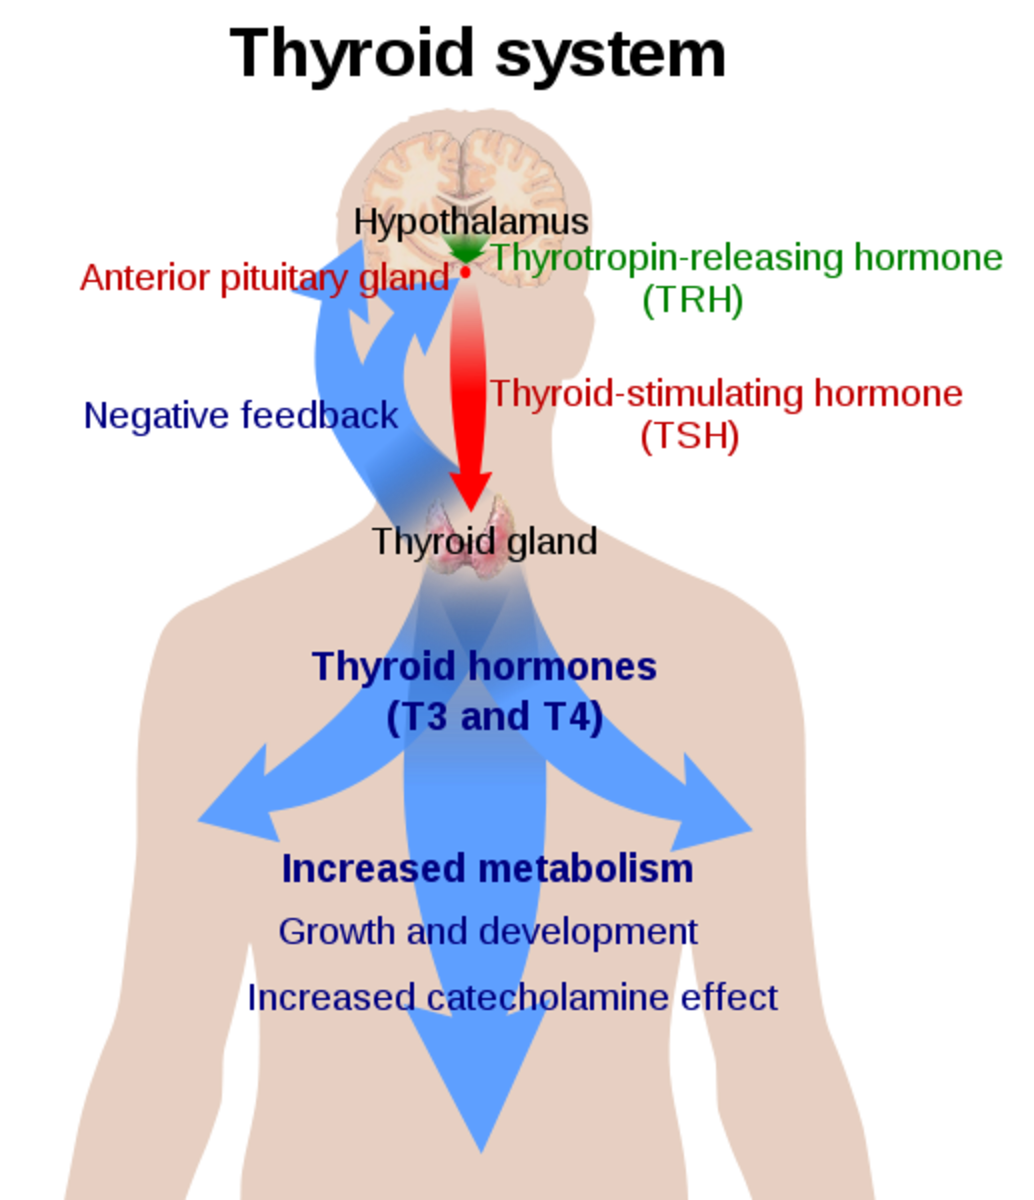 Thyromegaly - Symptoms, Causes, Types, Treatment, Medication, Prevention